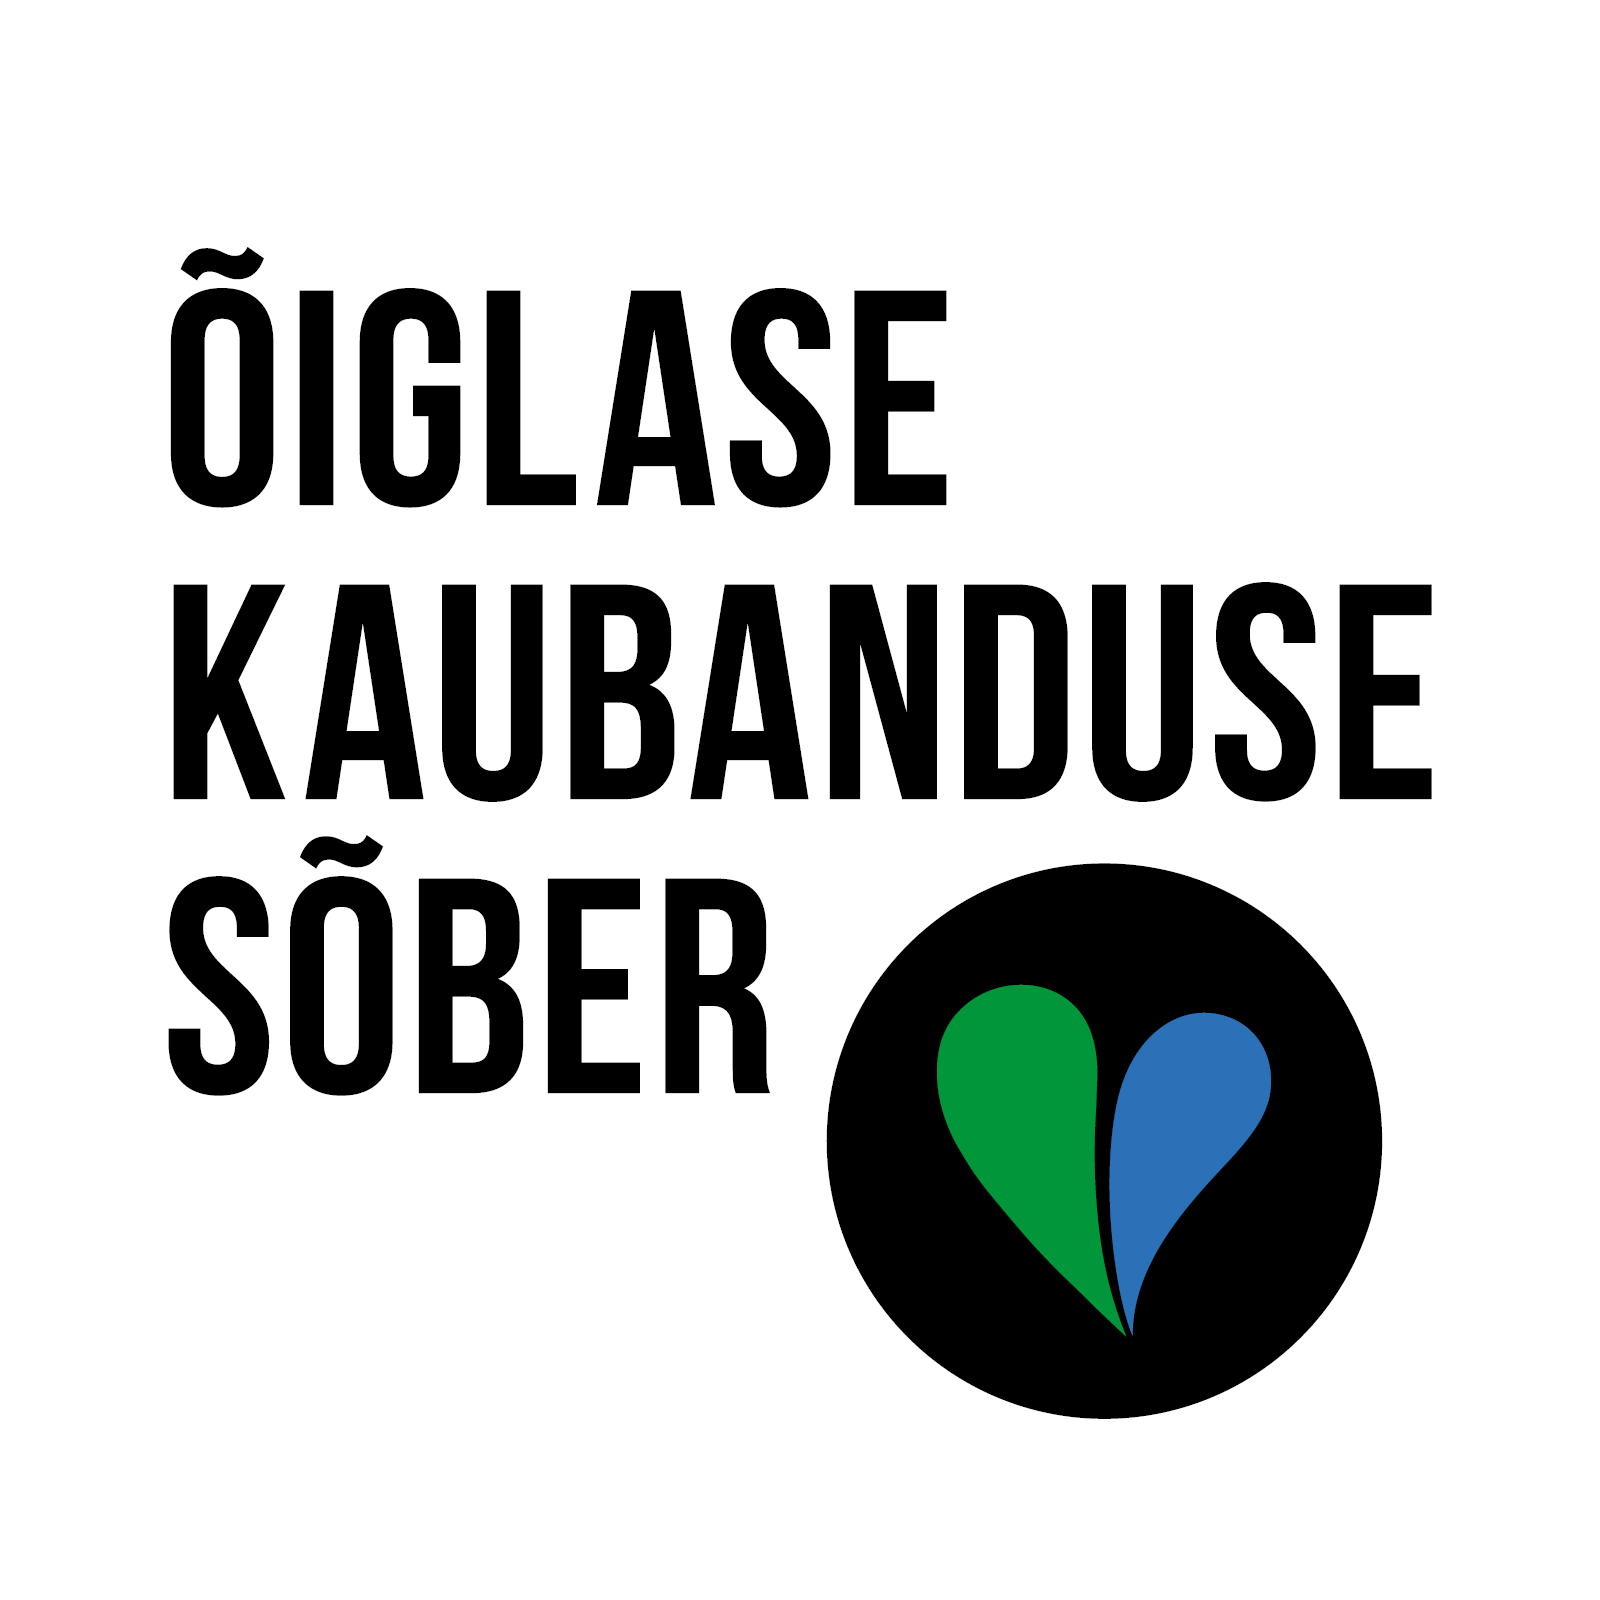 Õiglase kaubanduse sõber